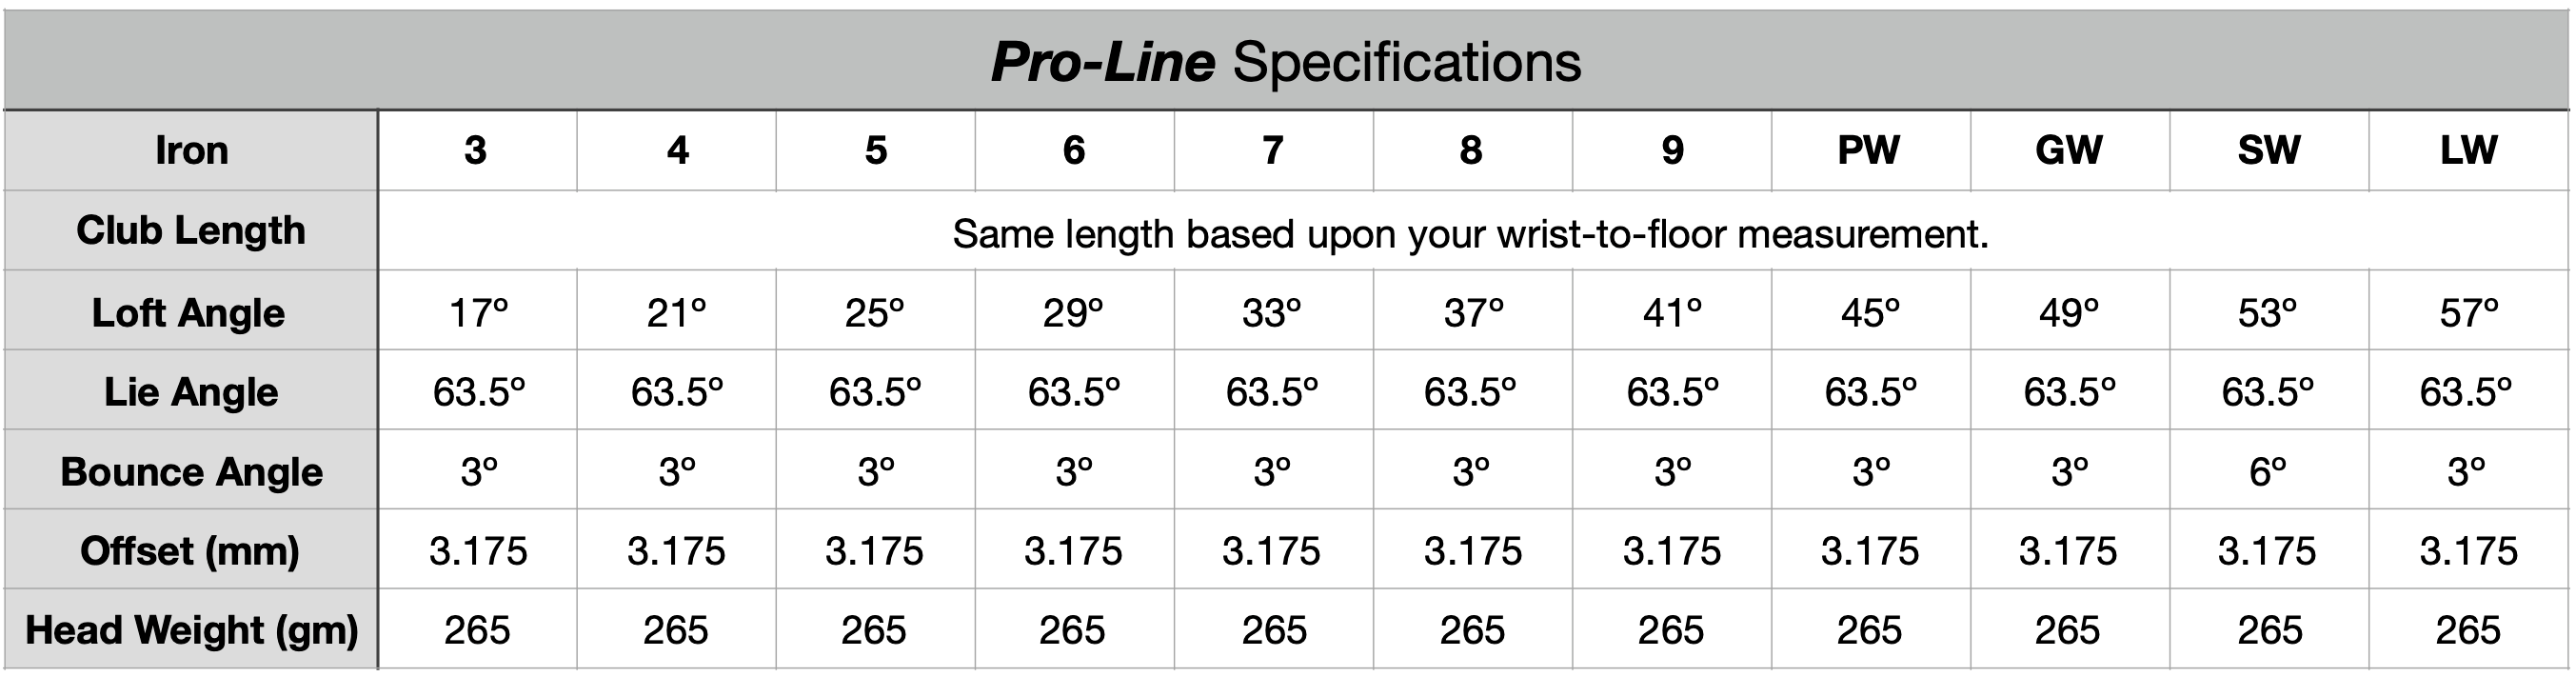 Pro-Line Iron Specifications